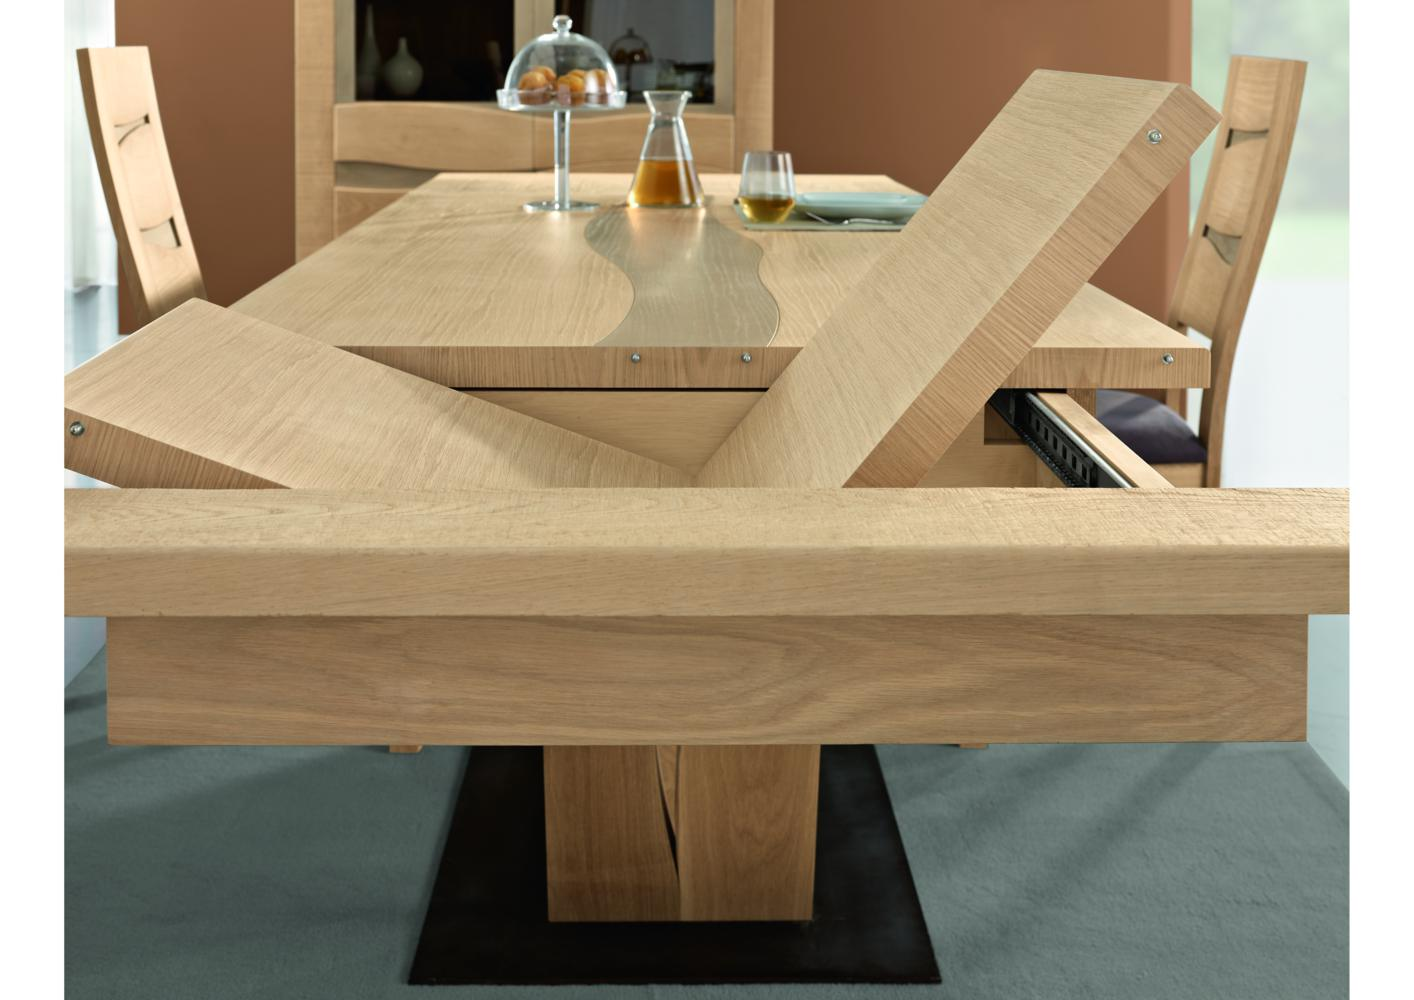 Table contemporaine avec pied central Table rectangulaire bois avec allonges